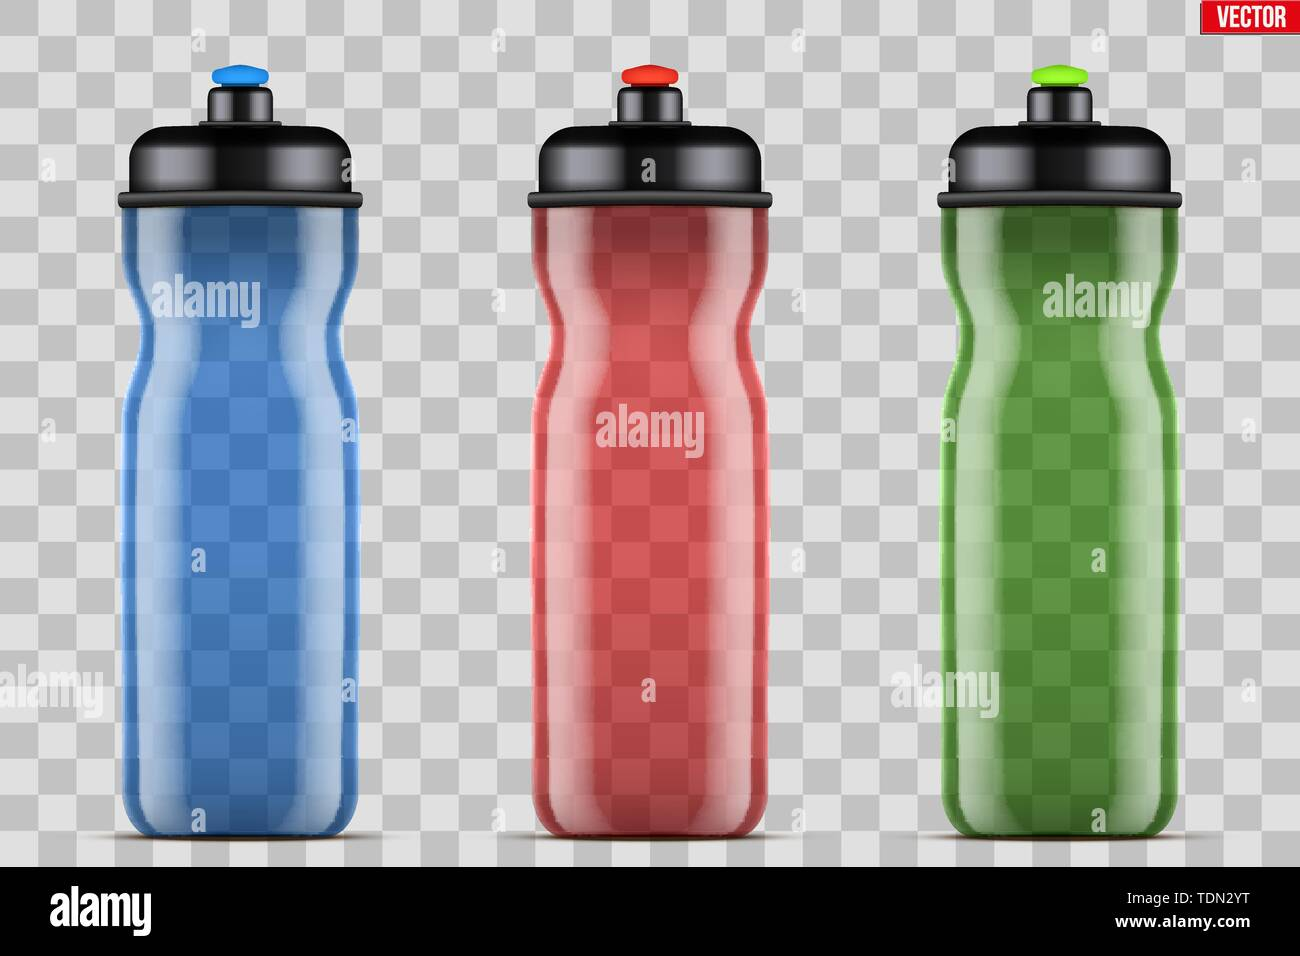 Mock-up Plastic Sport Nutrition Drink Bottle. Transparent plastic. For Whey Protein and Gainer Supplements. Fitness and GYM sports. Vector Illustratio - Stock Image